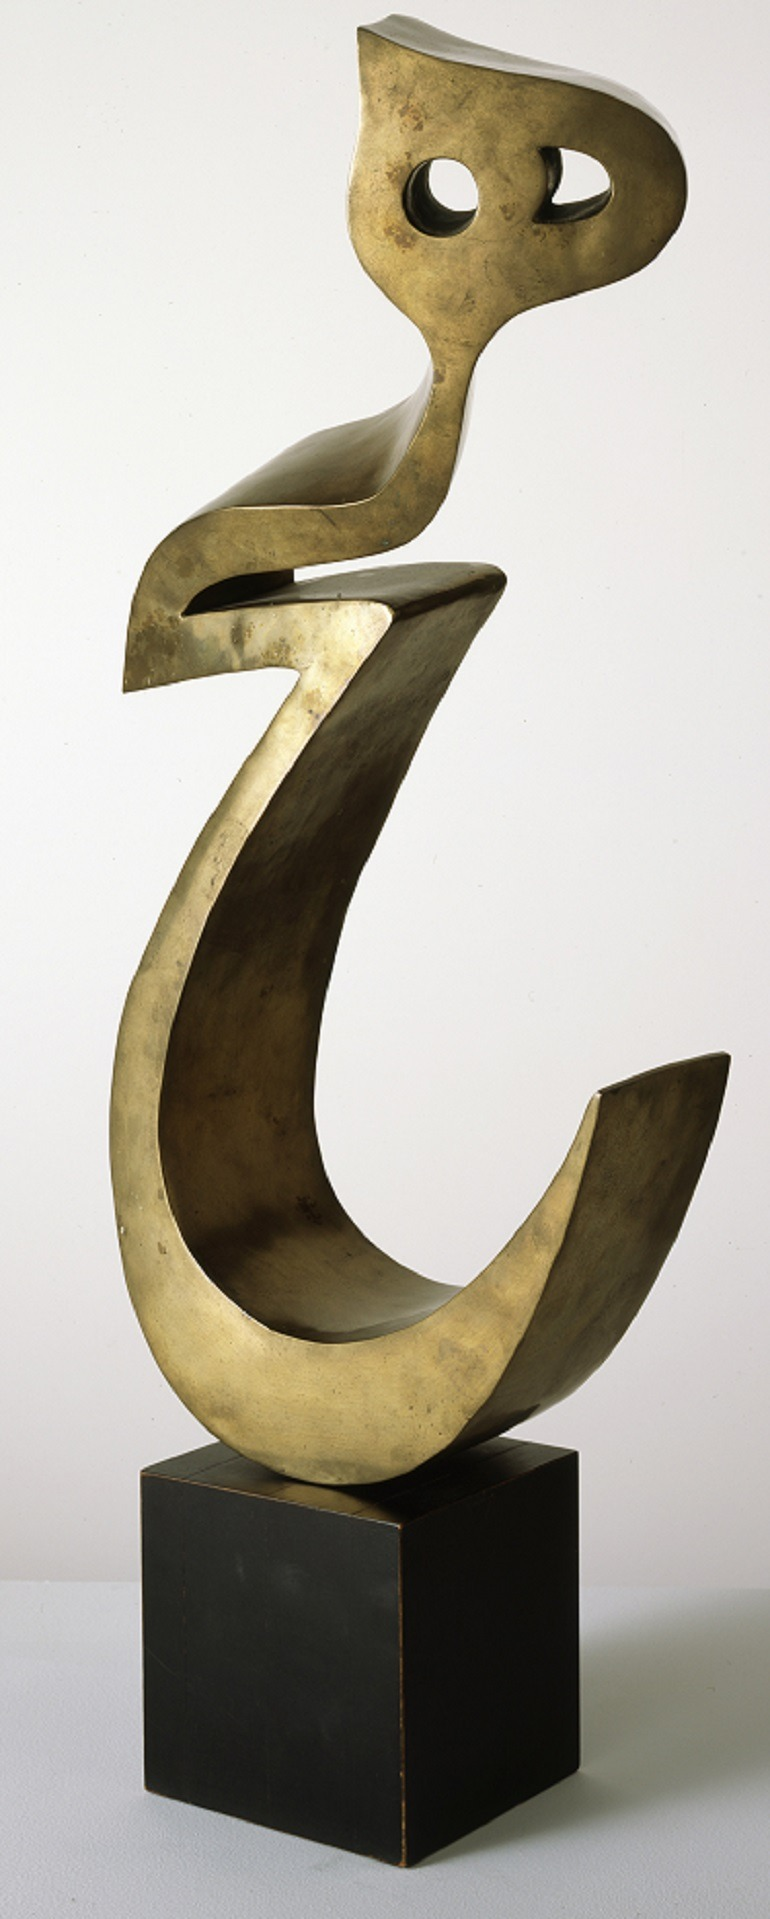 Image: Bronze sculpture by Parviz Tanavoli is in the Grey Art Gallery, New York University Art Collection. It was part of the Iran Modern show in New York